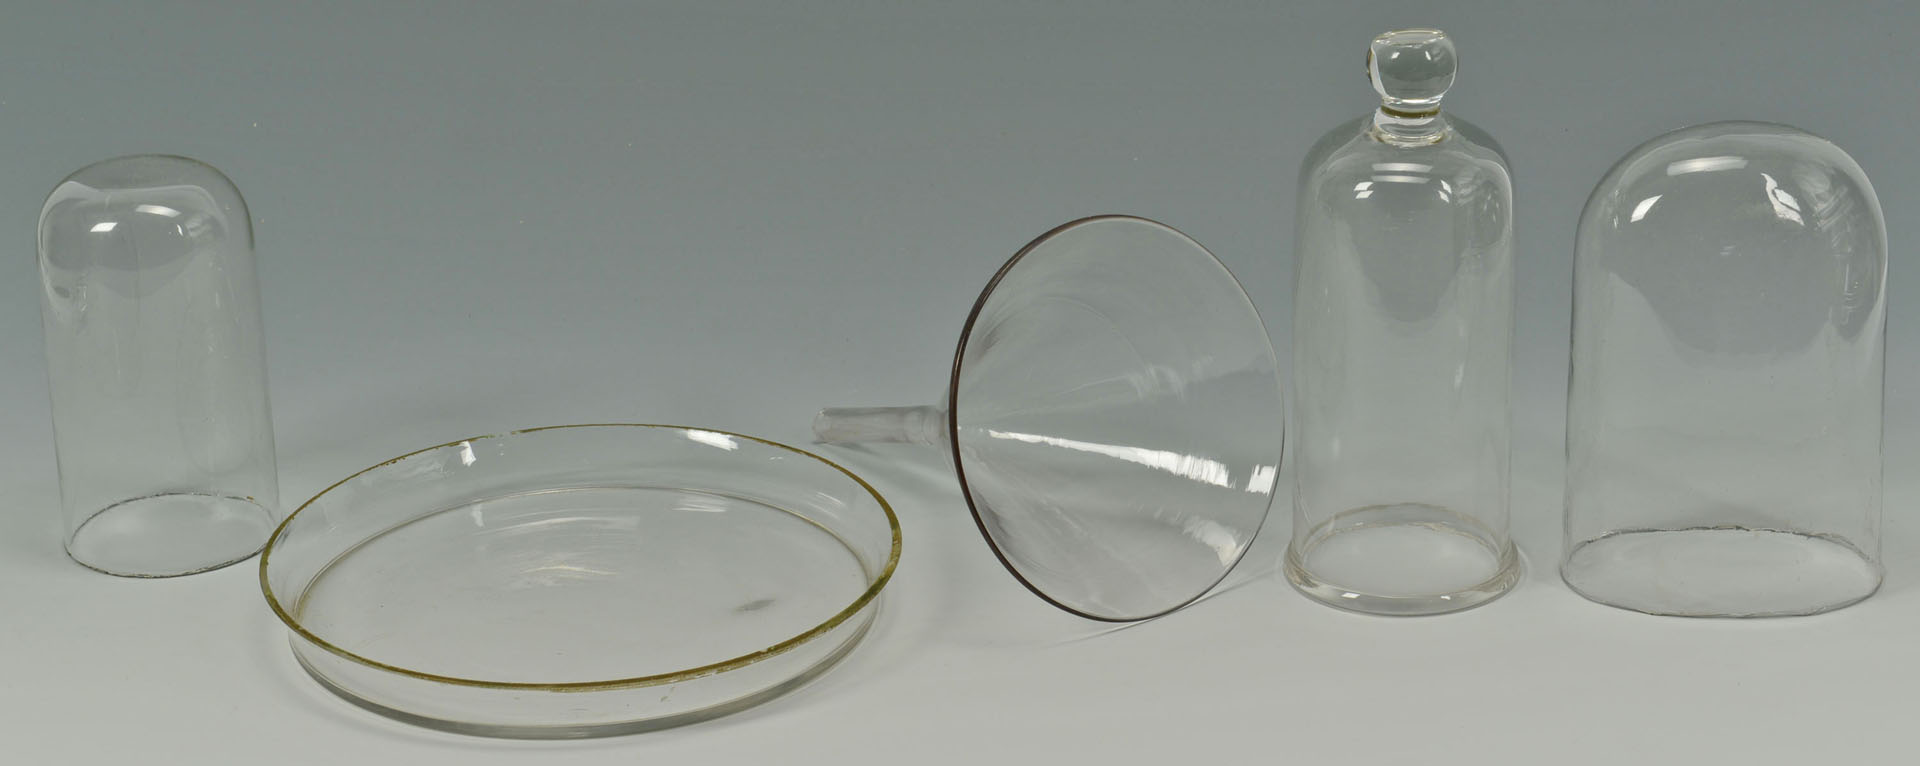 Lot 525: 9 Blown Glass Items incl. apothecary, domes, banks